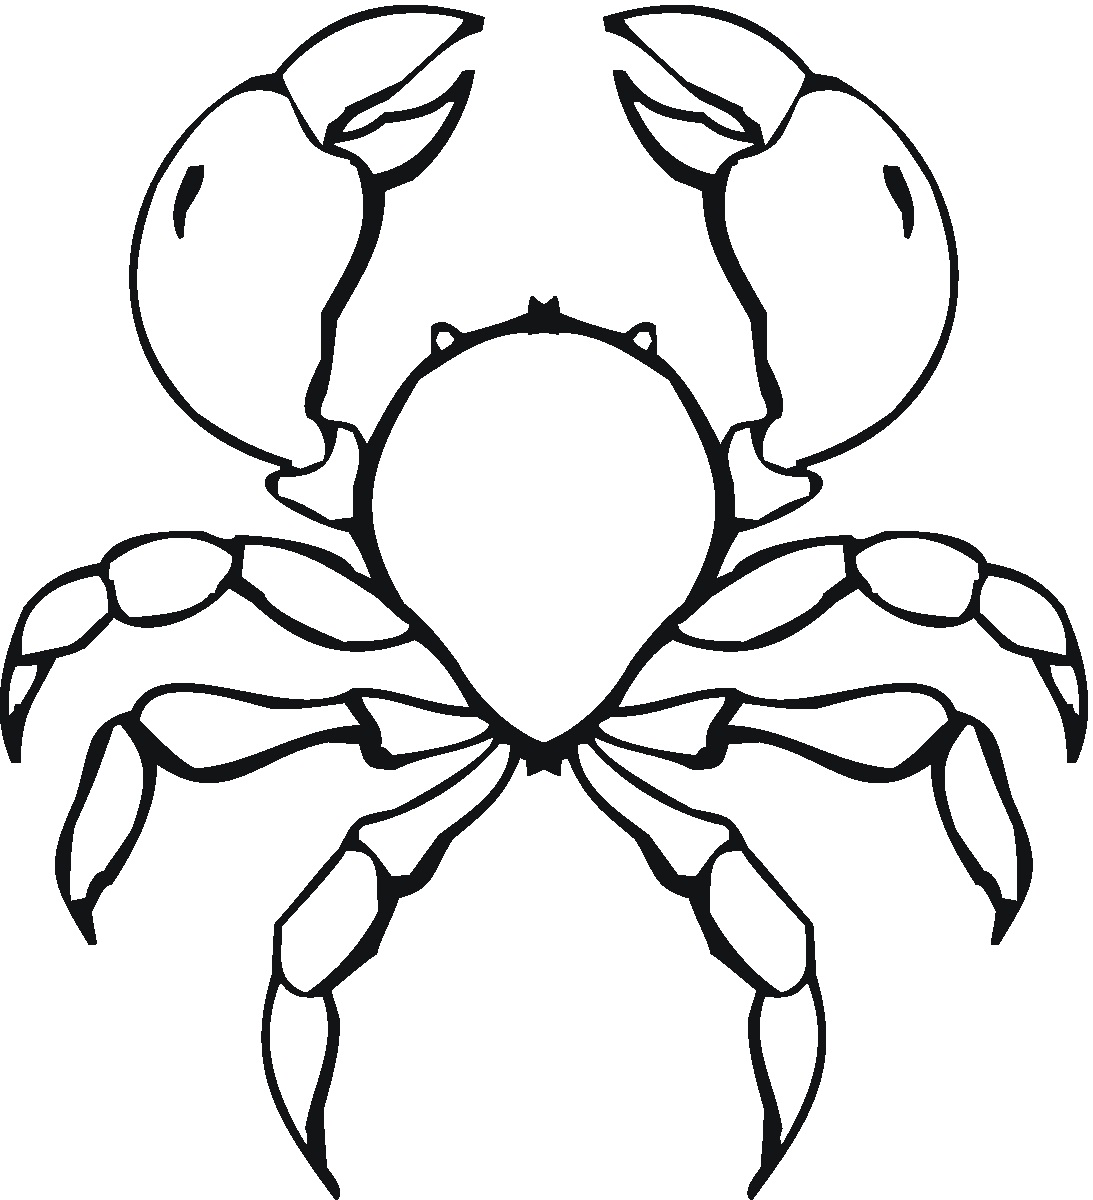 Free Printable Crab Coloring Pages For Kids | Animal Place